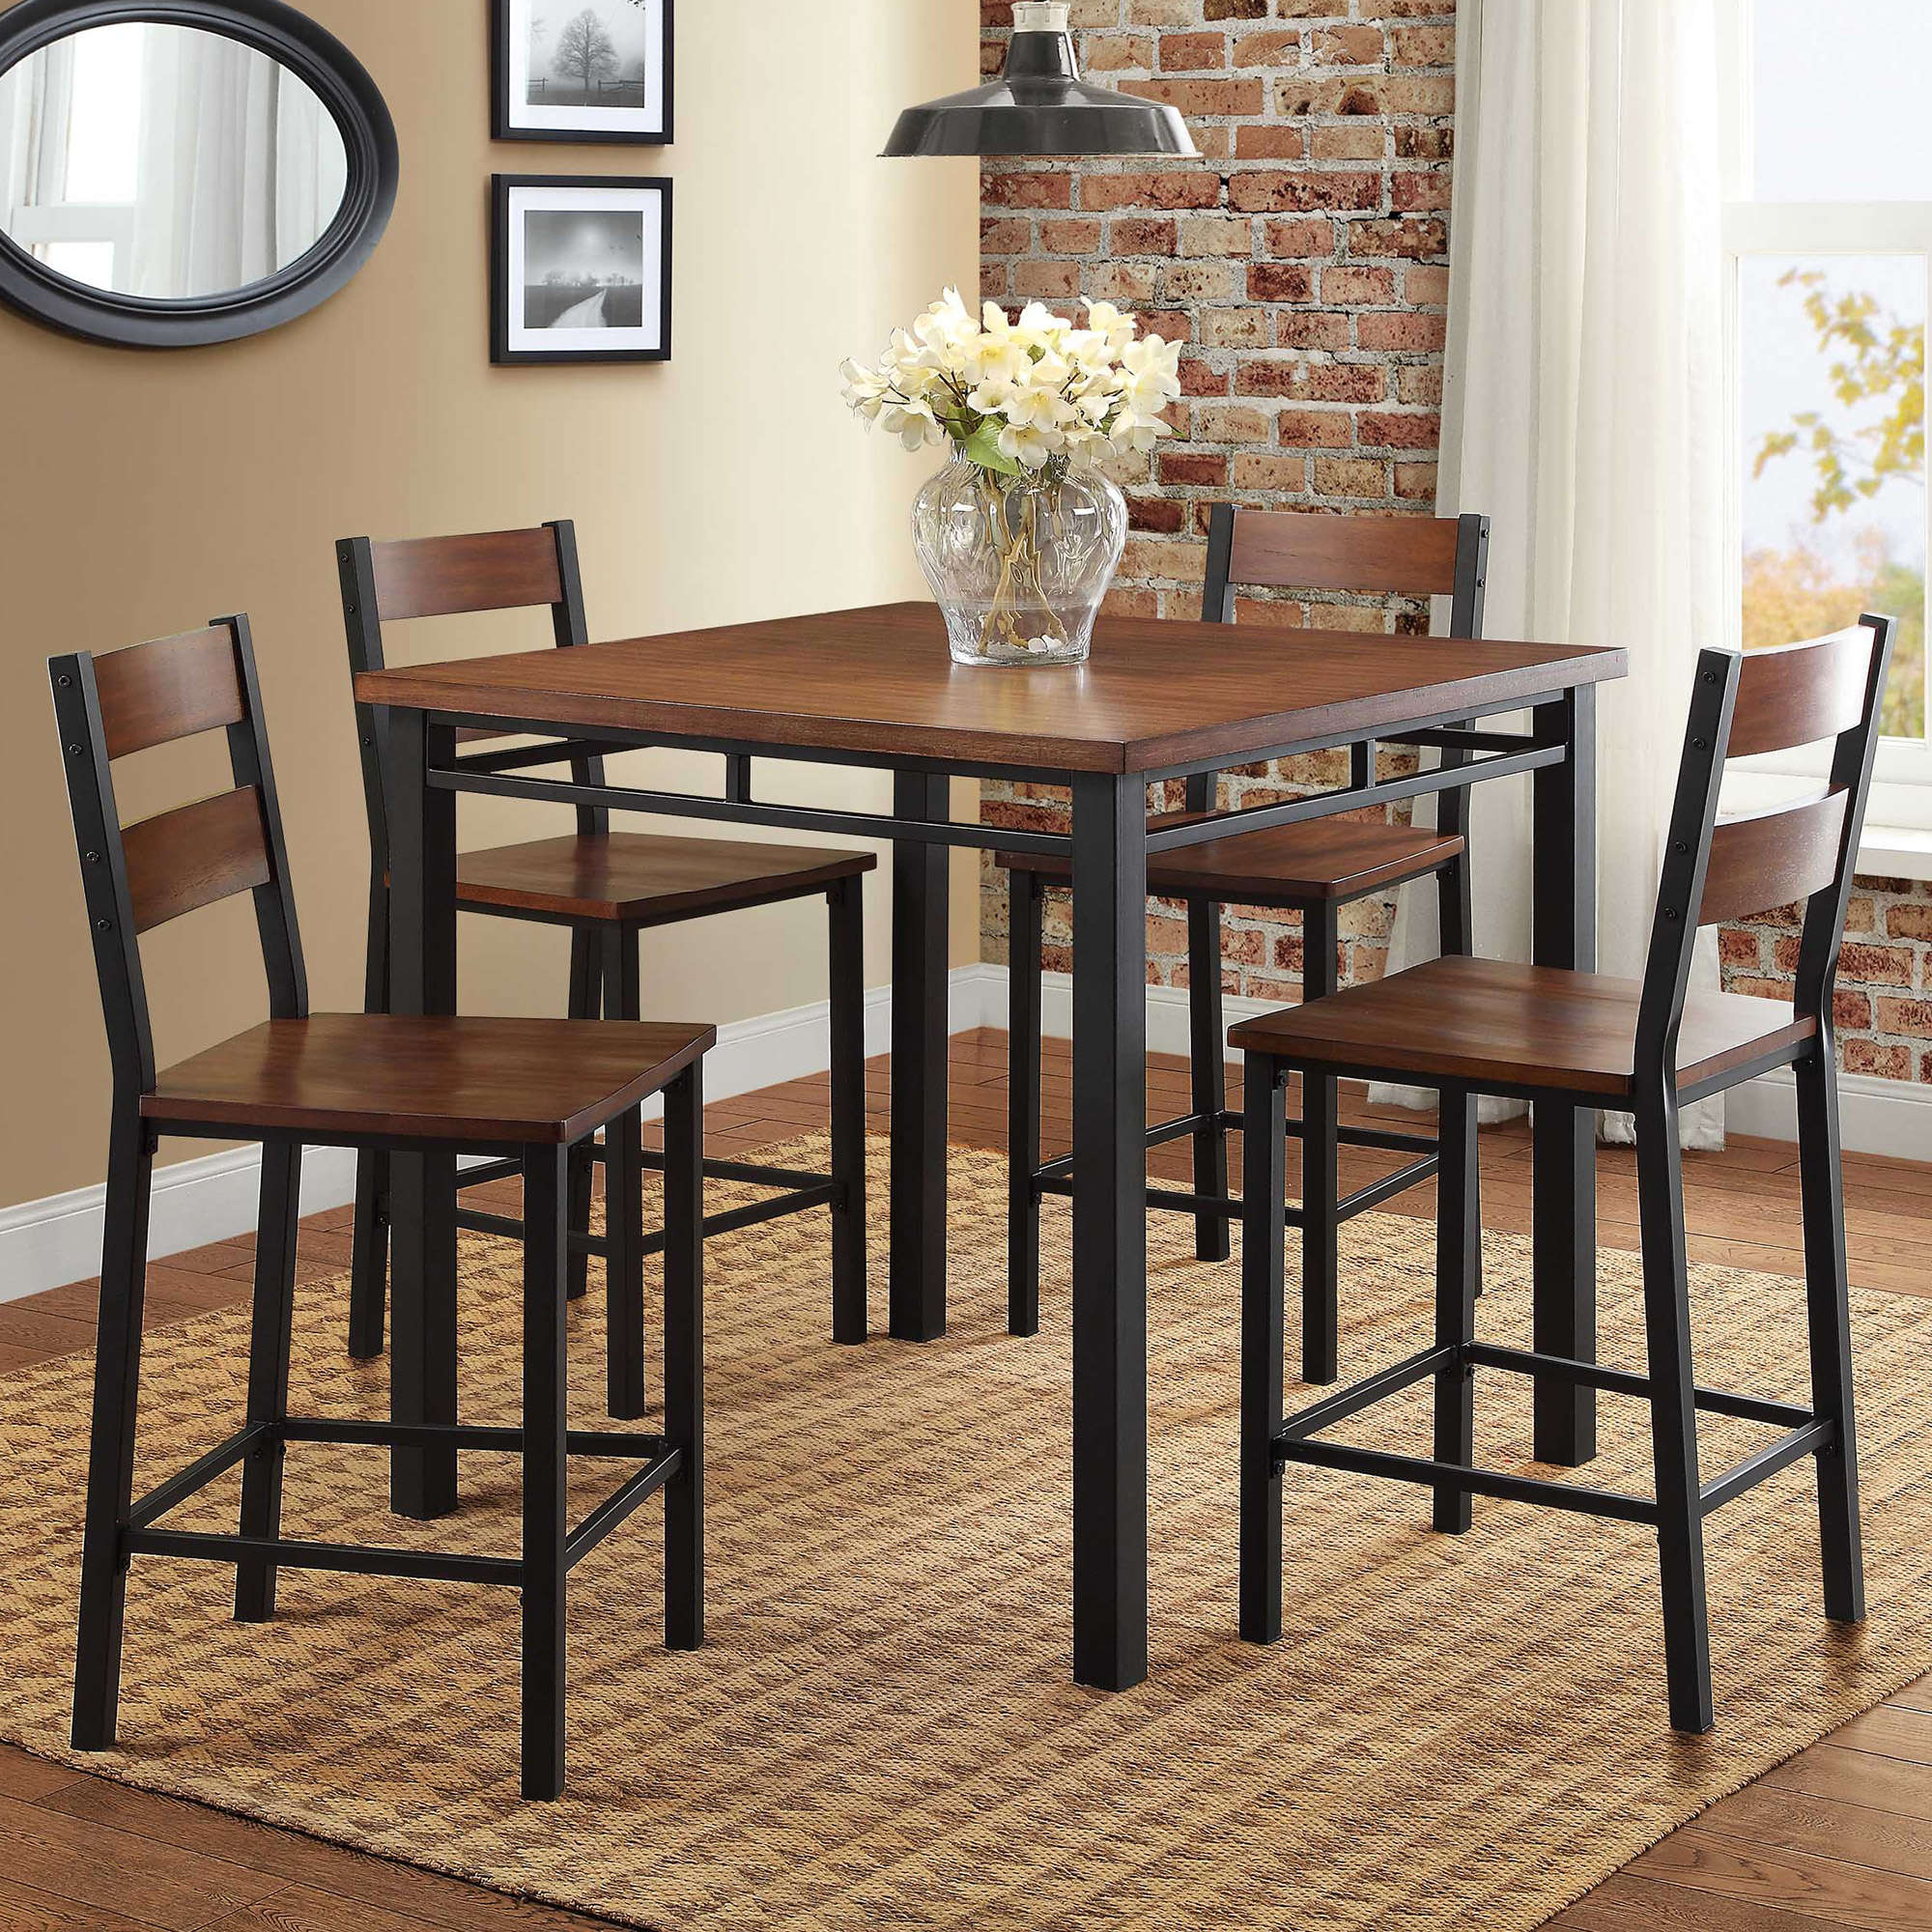 Kitchen & Dining Furniture – Walmart For Latest Ligon 3 Piece Breakfast Nook Dining Sets (Image 9 of 20)